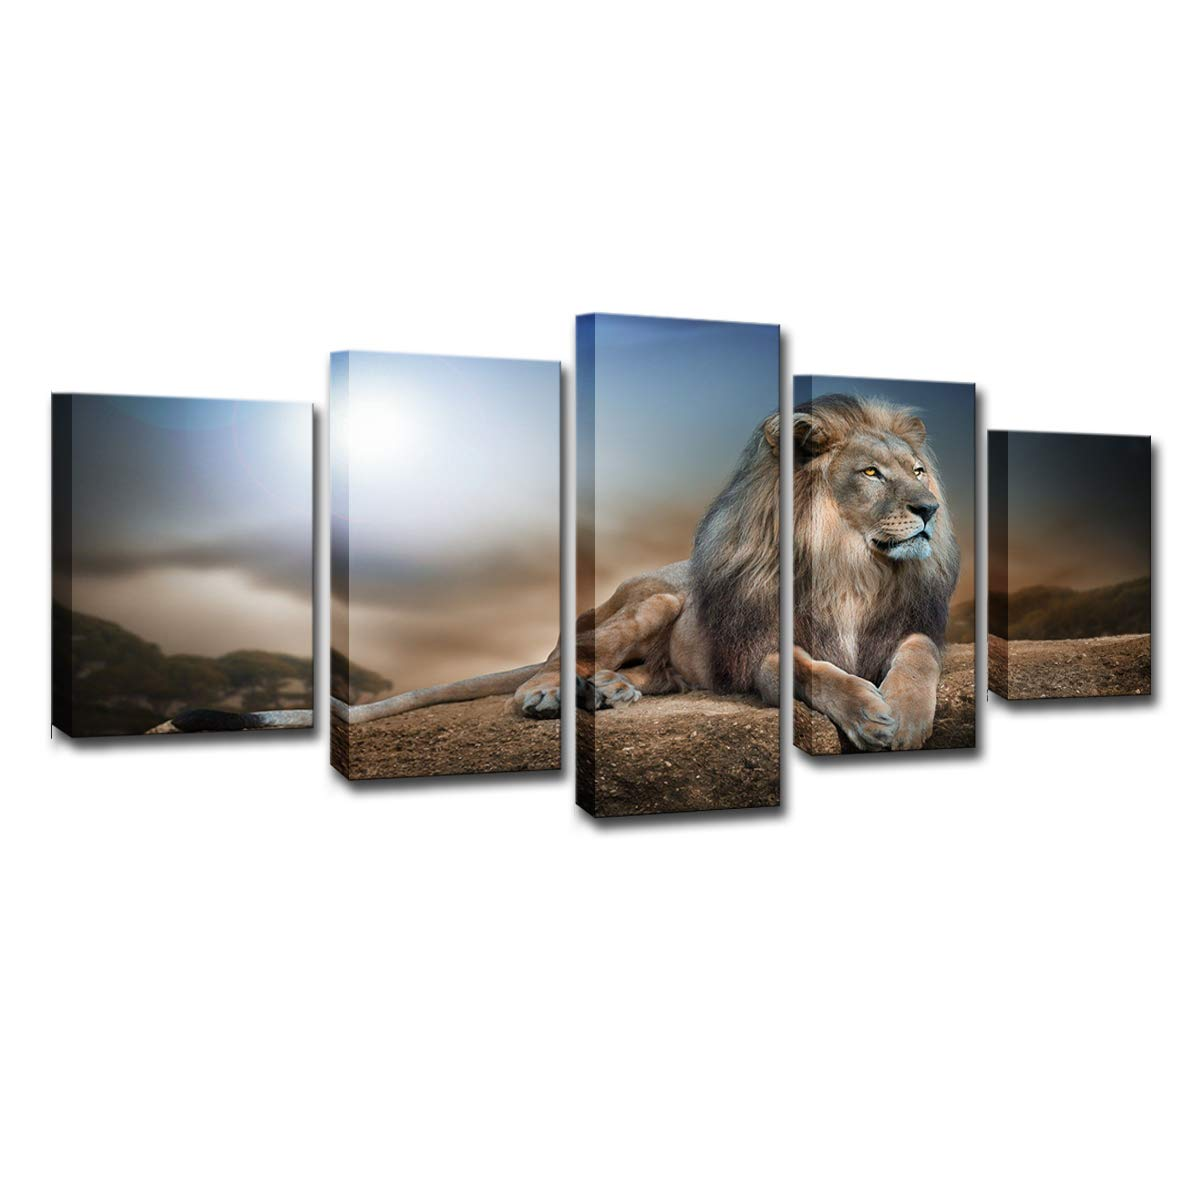 FOLOIN Modern HD Prints Pictures Framework Living Room Canvas Posters 5 Pieces Lion Animals Group Paintings Wall Art Home Decor by FOLOIN